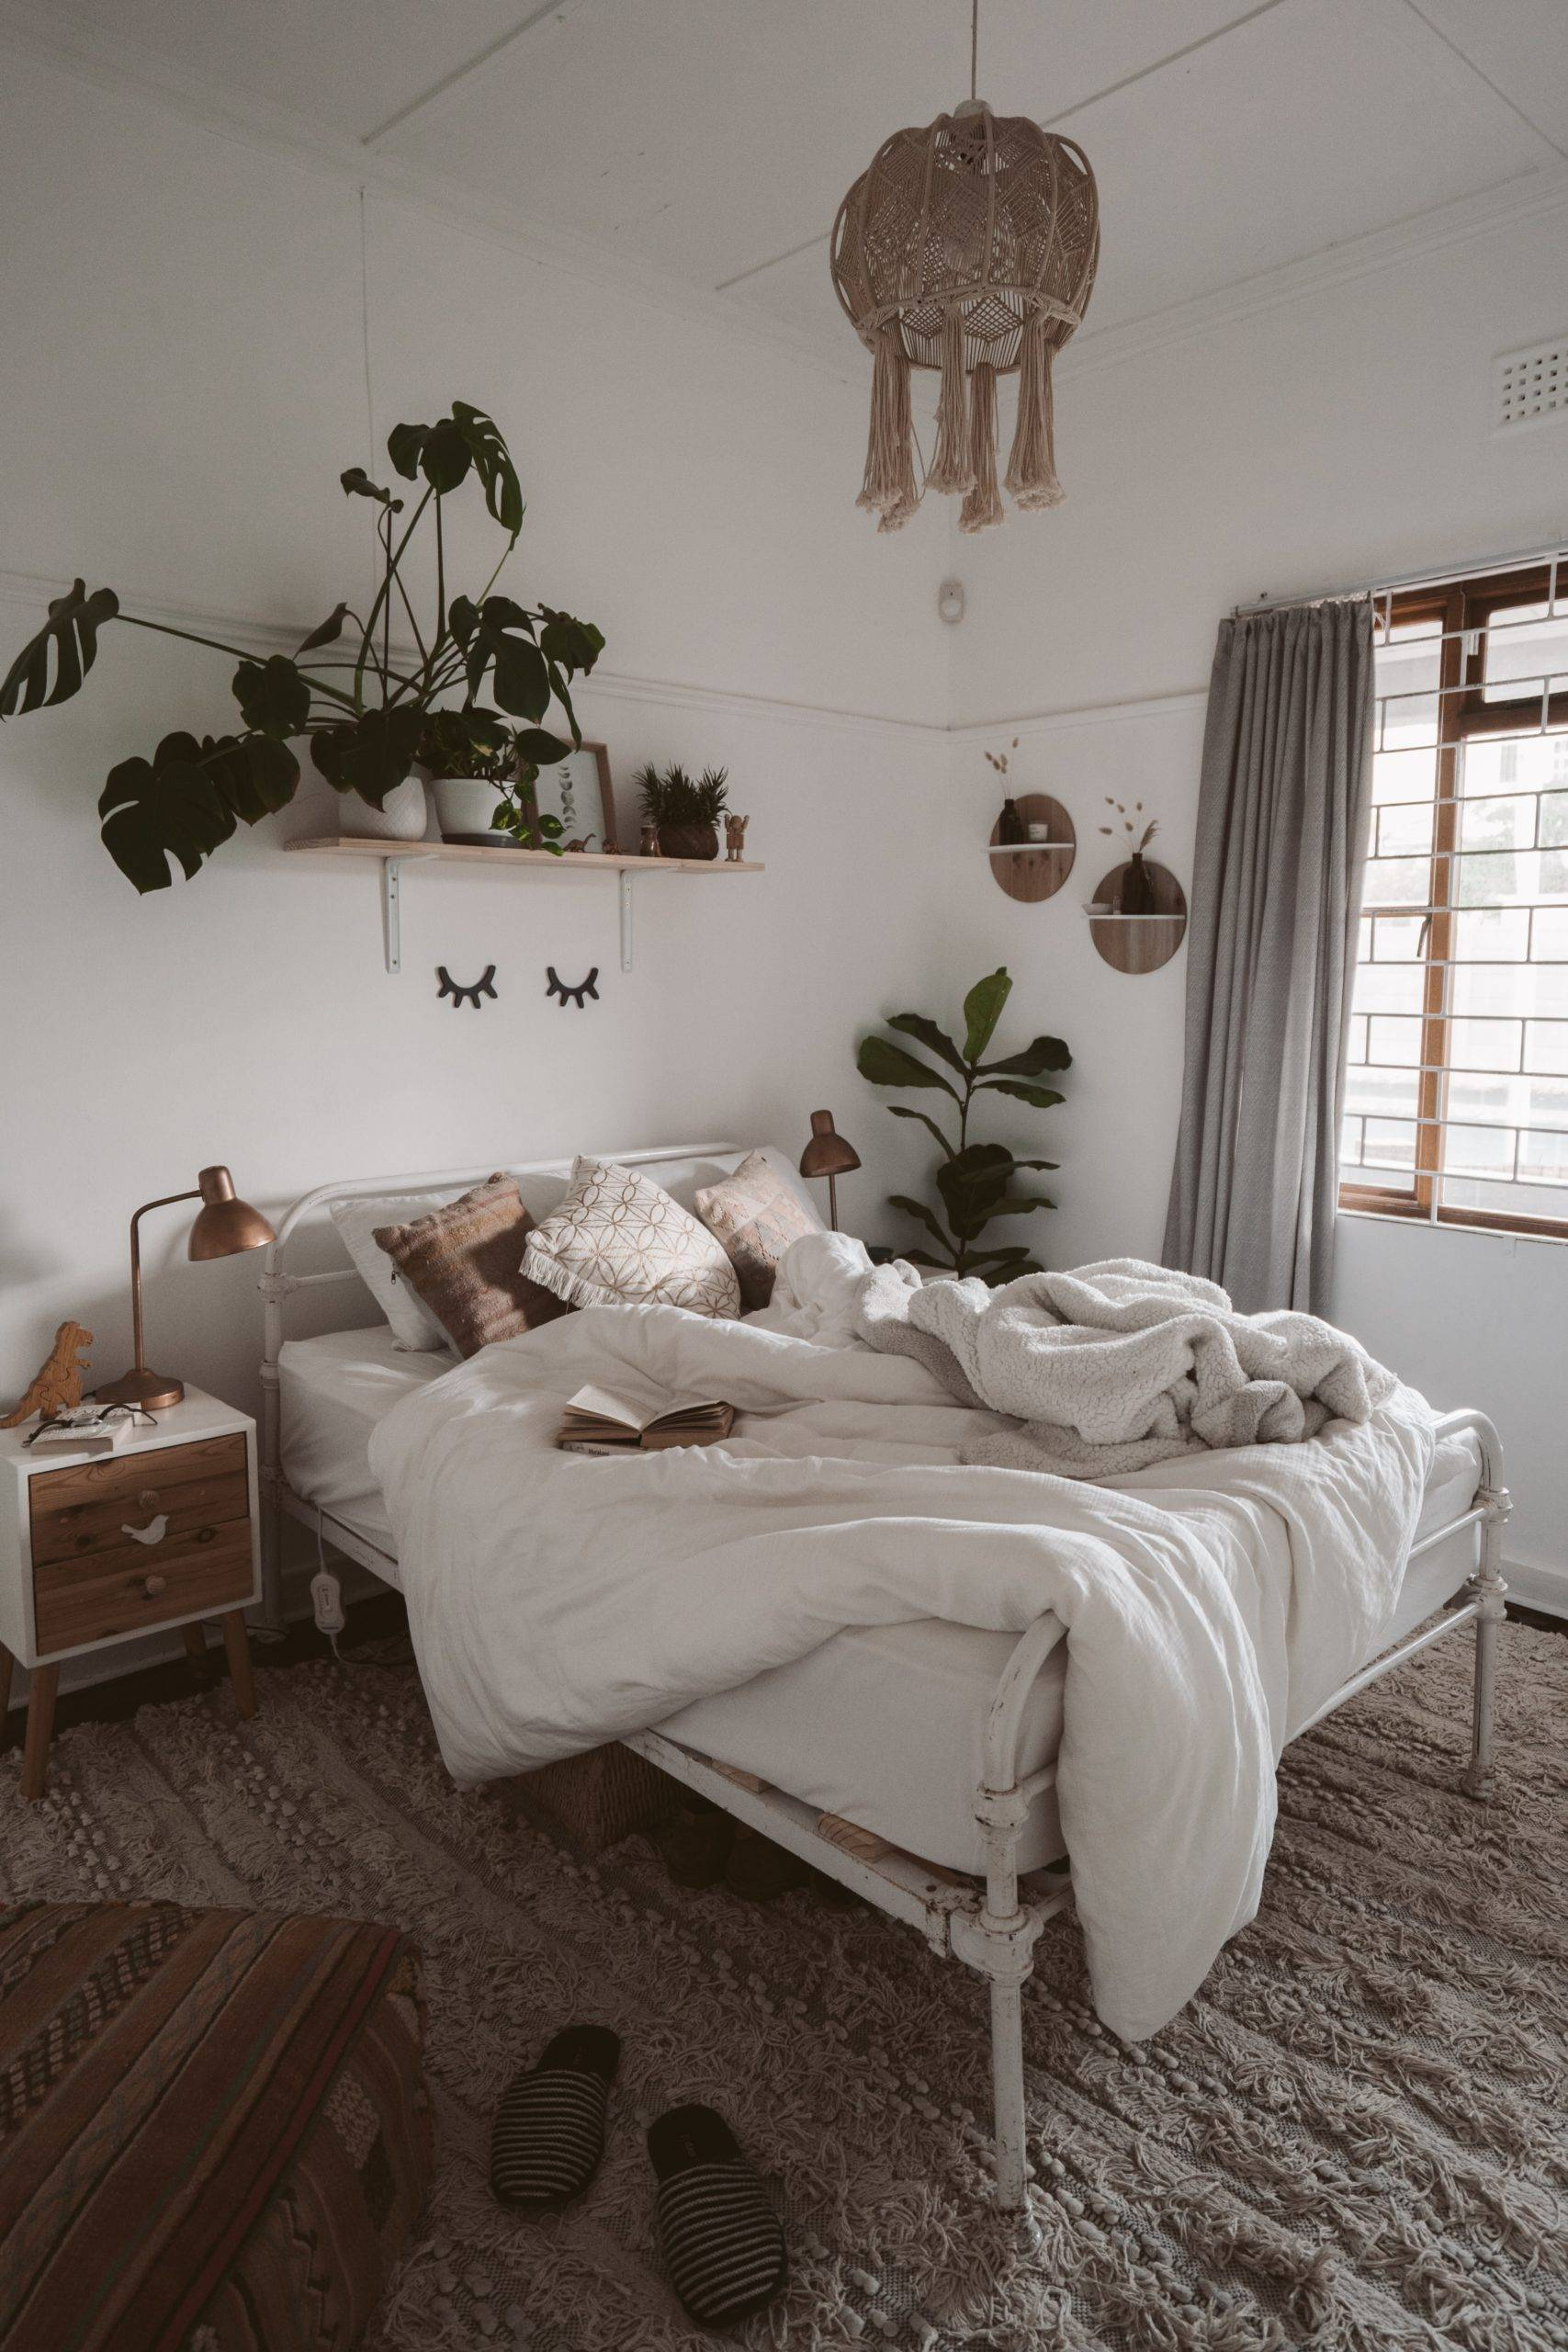 Plants above an unkept bed